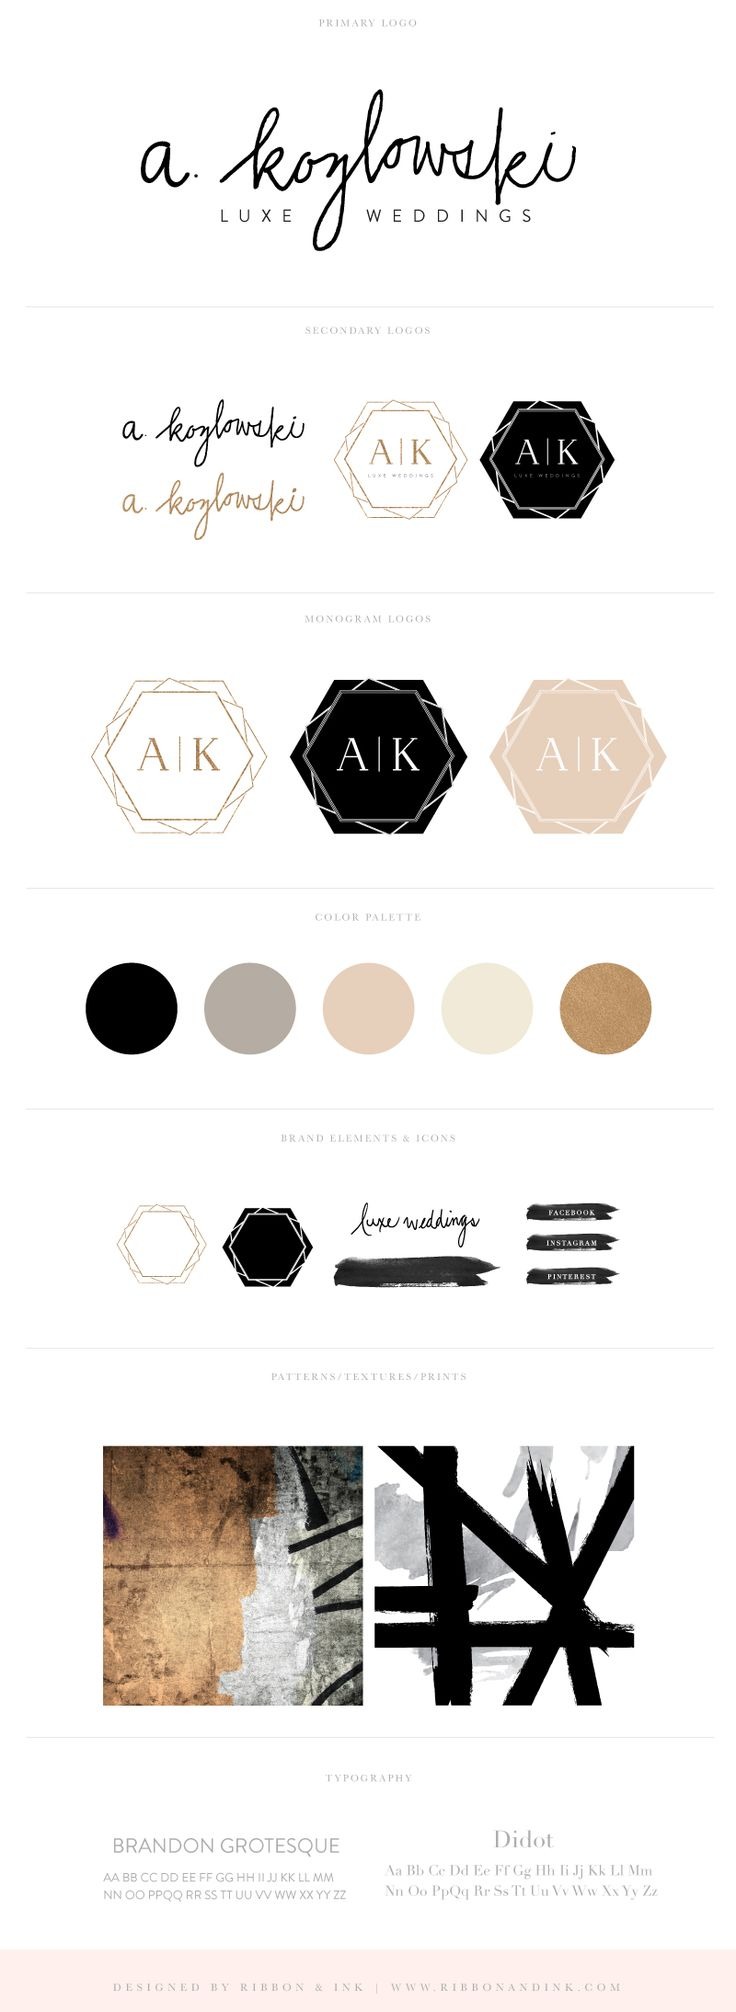 Branding and Web Design / brand design / wedding planner brand board / logo design / brand ideas / black and gold / color palette / branding for creatives / branding for photographers / brand design